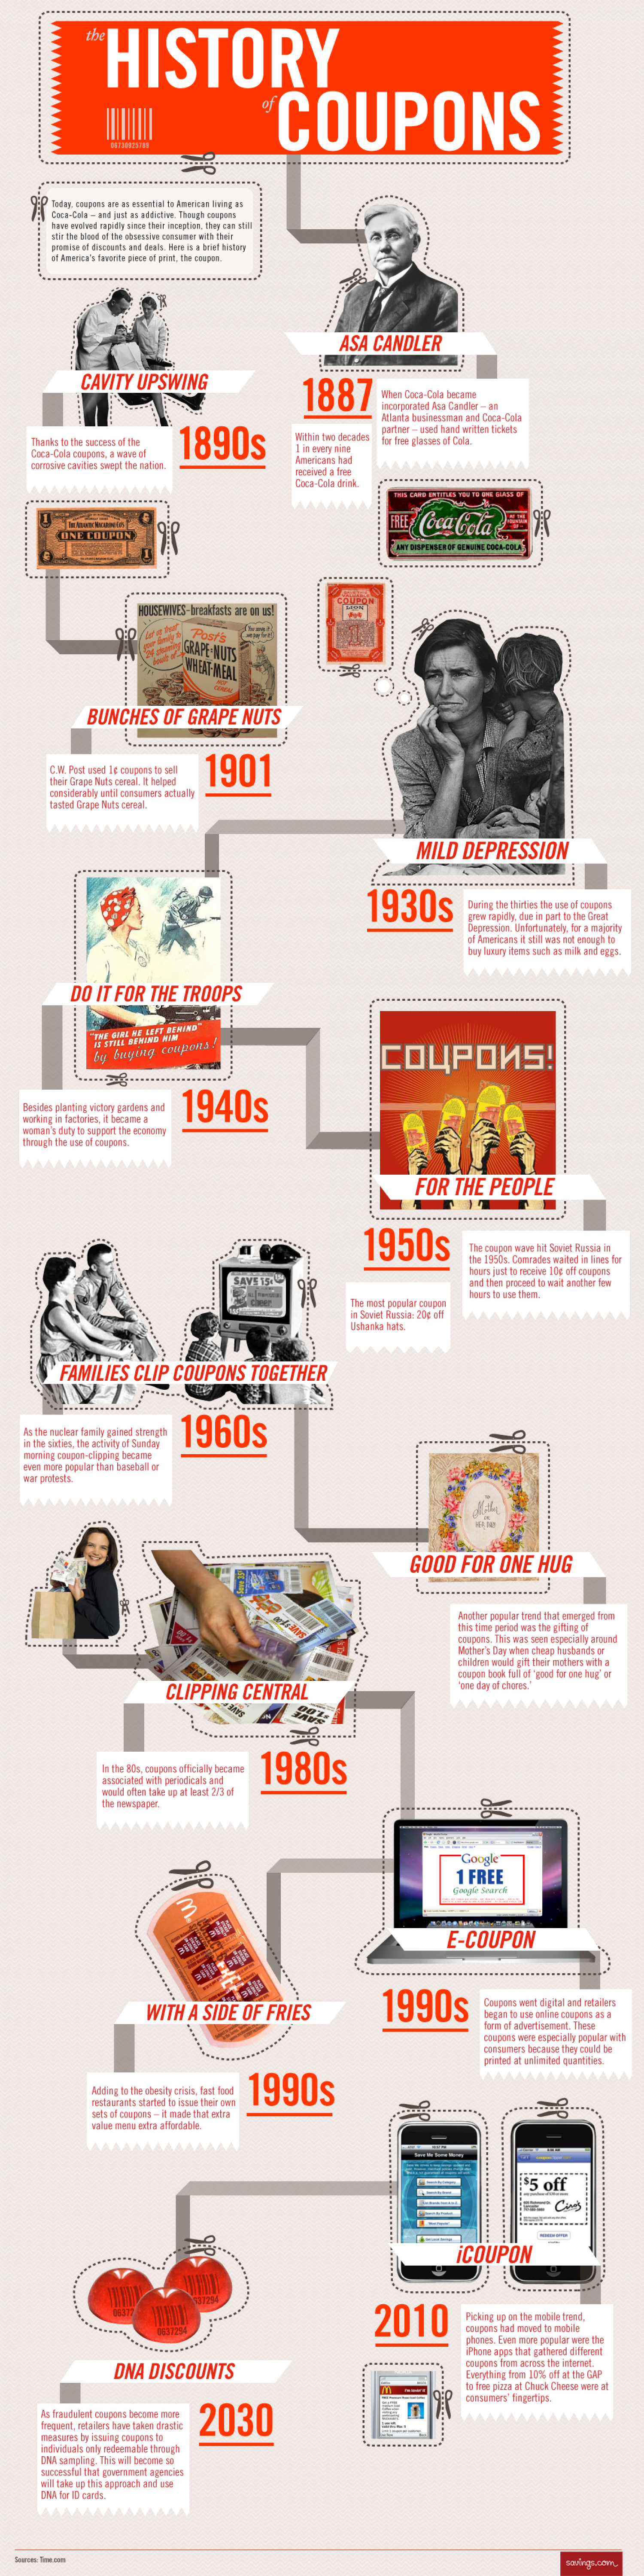 The History of Coupons Infographic